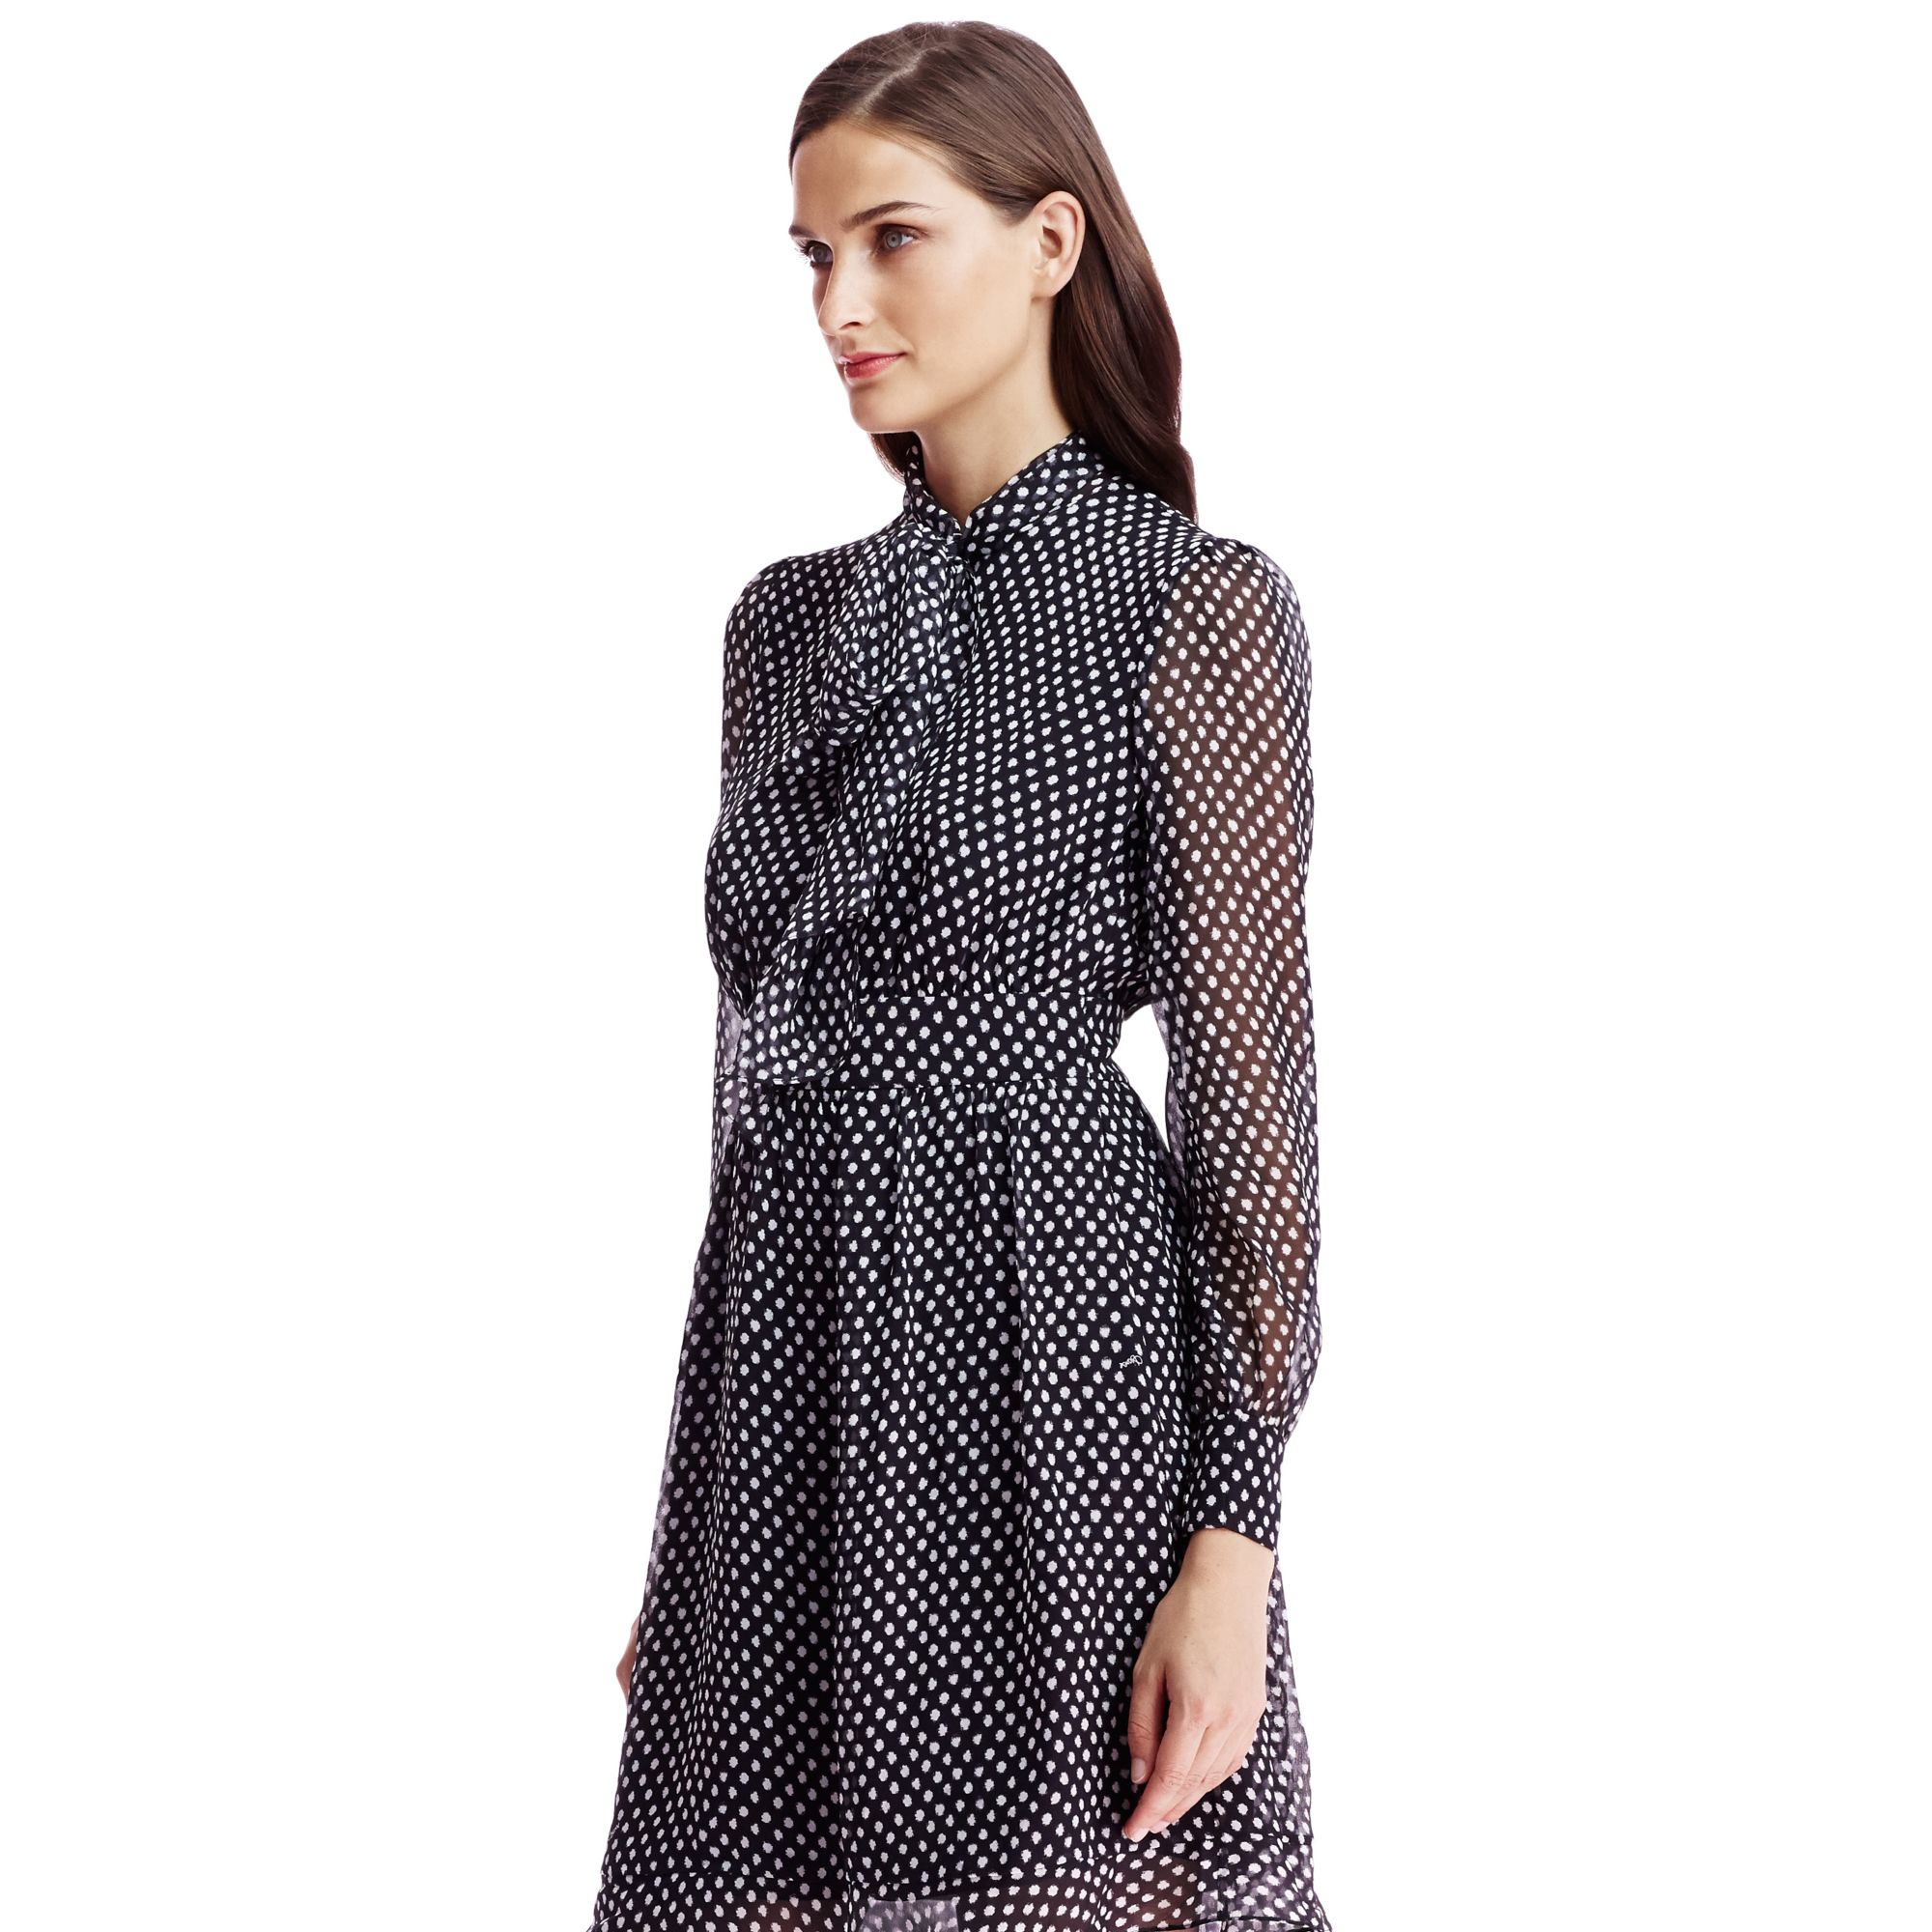 Polka Dot Definition of Polka Dot by Merriam-Webster Polka dot dress fashion 2018